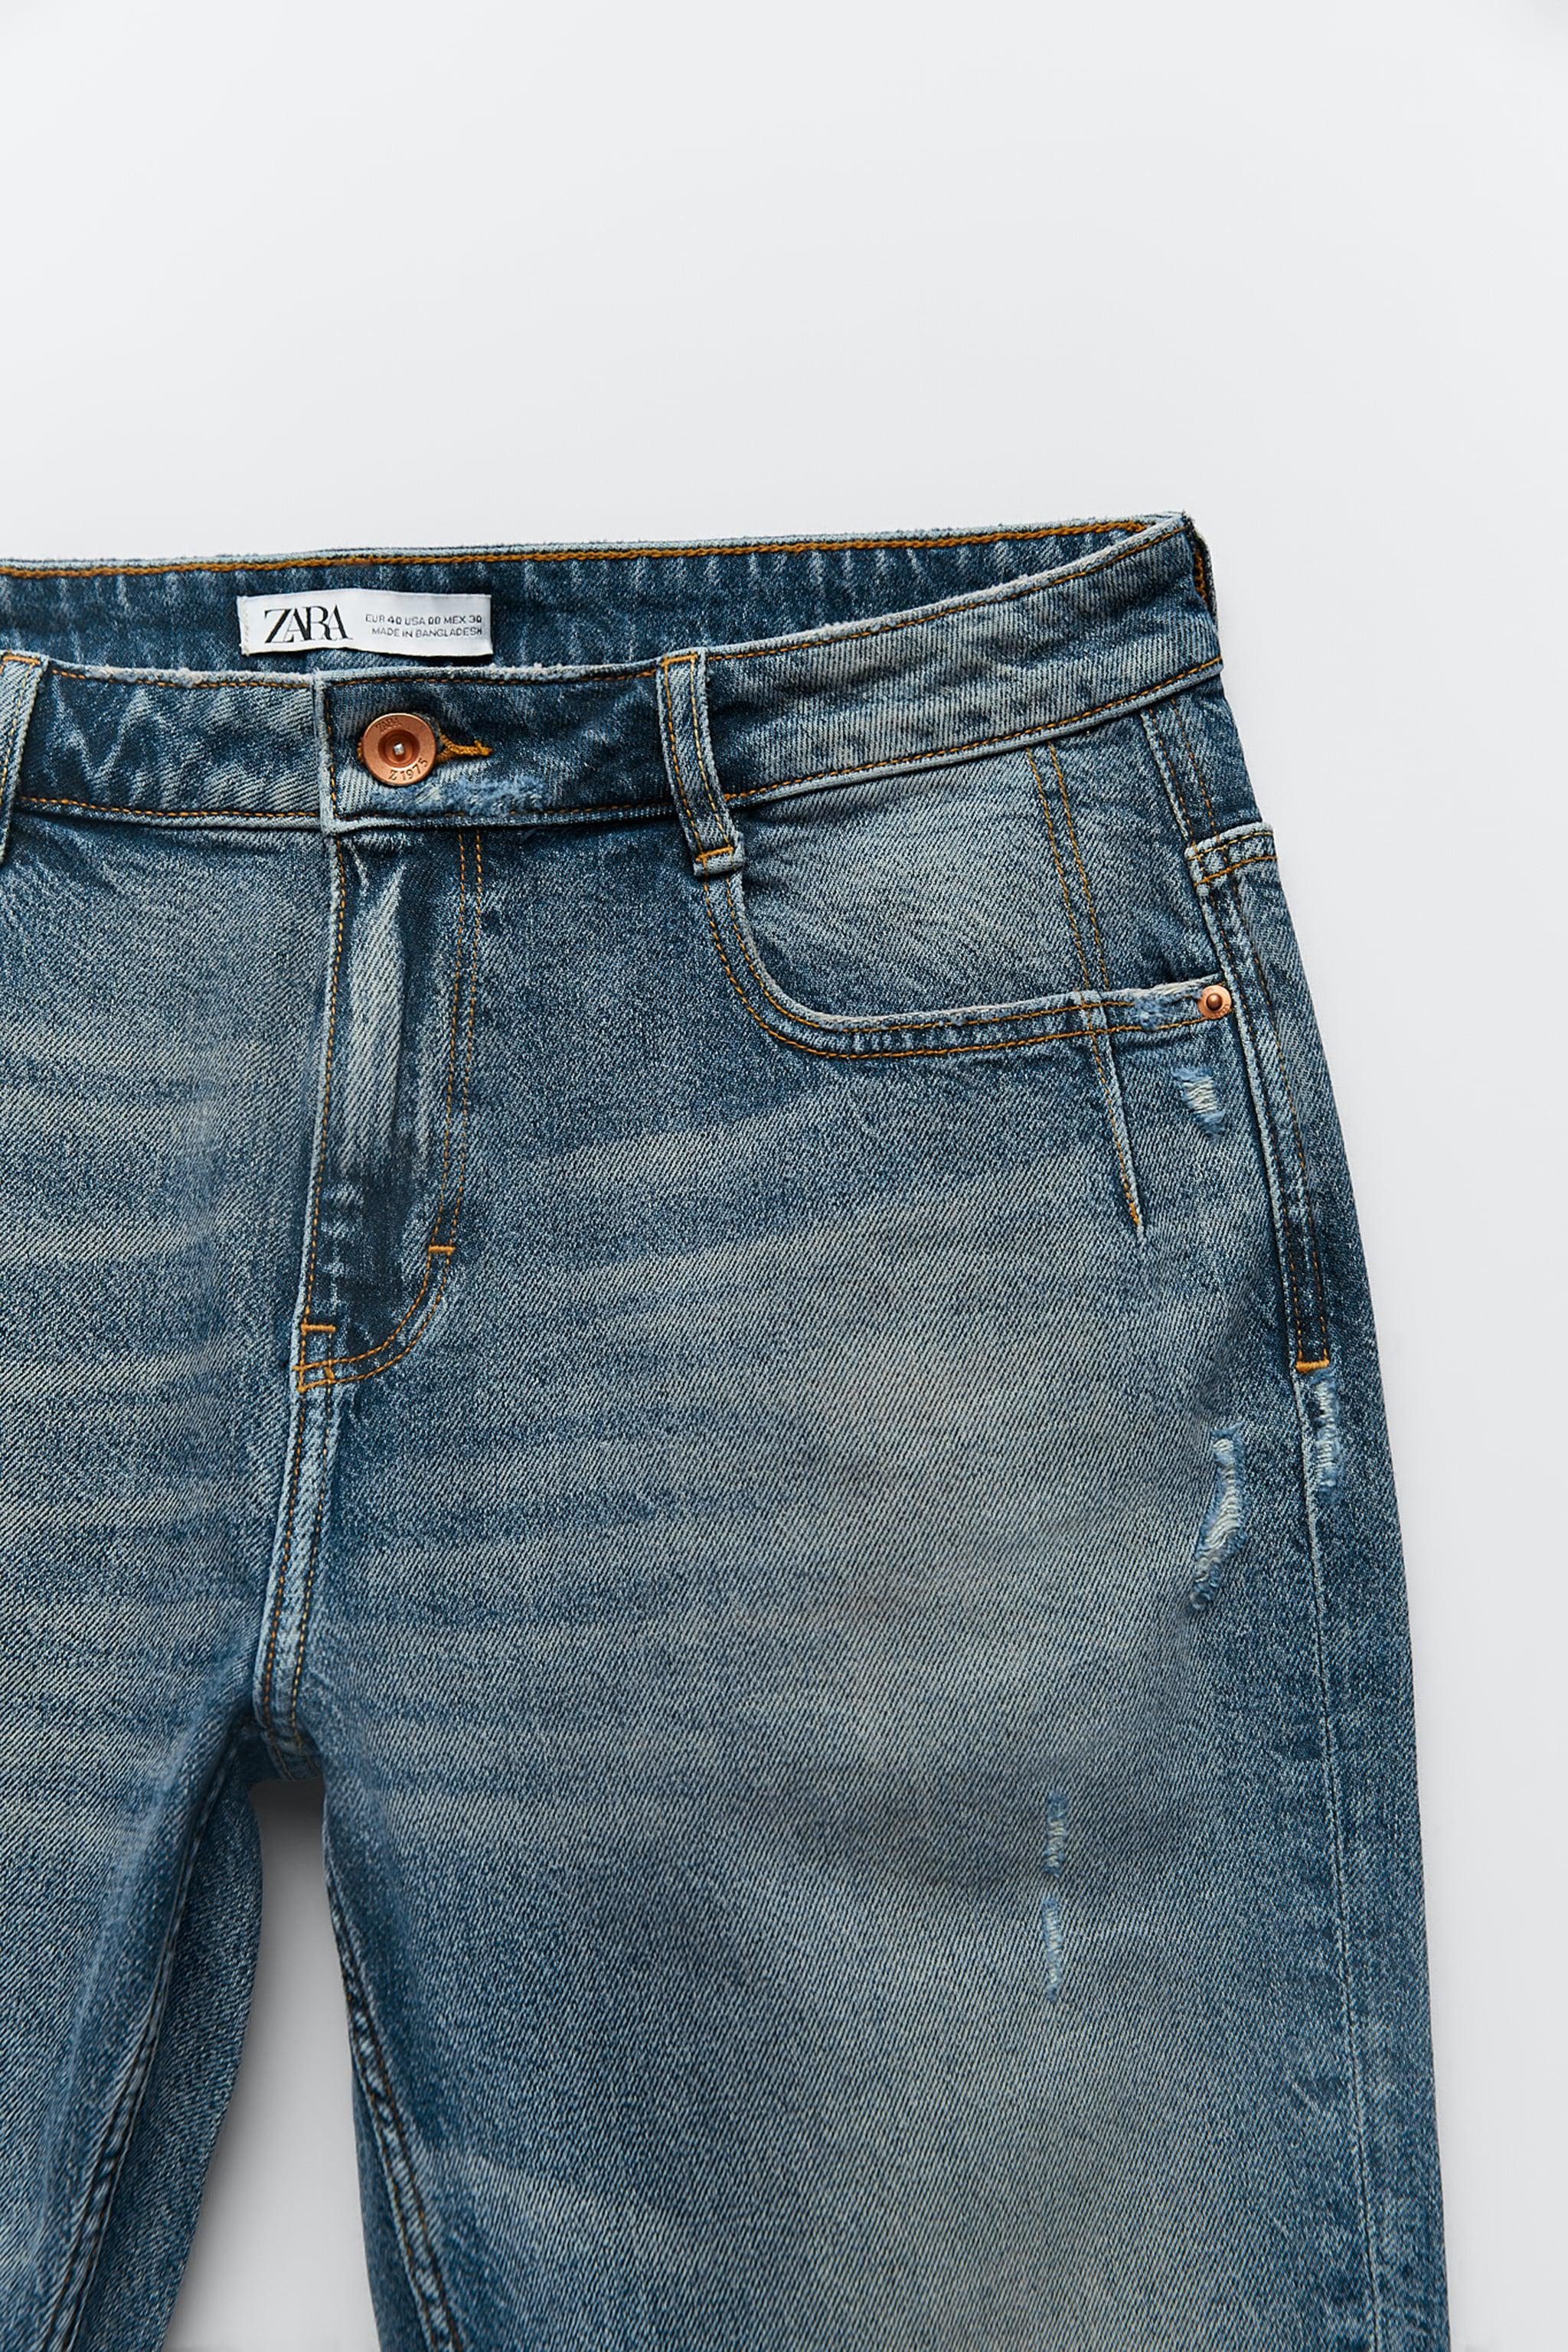 Z1975 RELAXED FIT JEANS 5